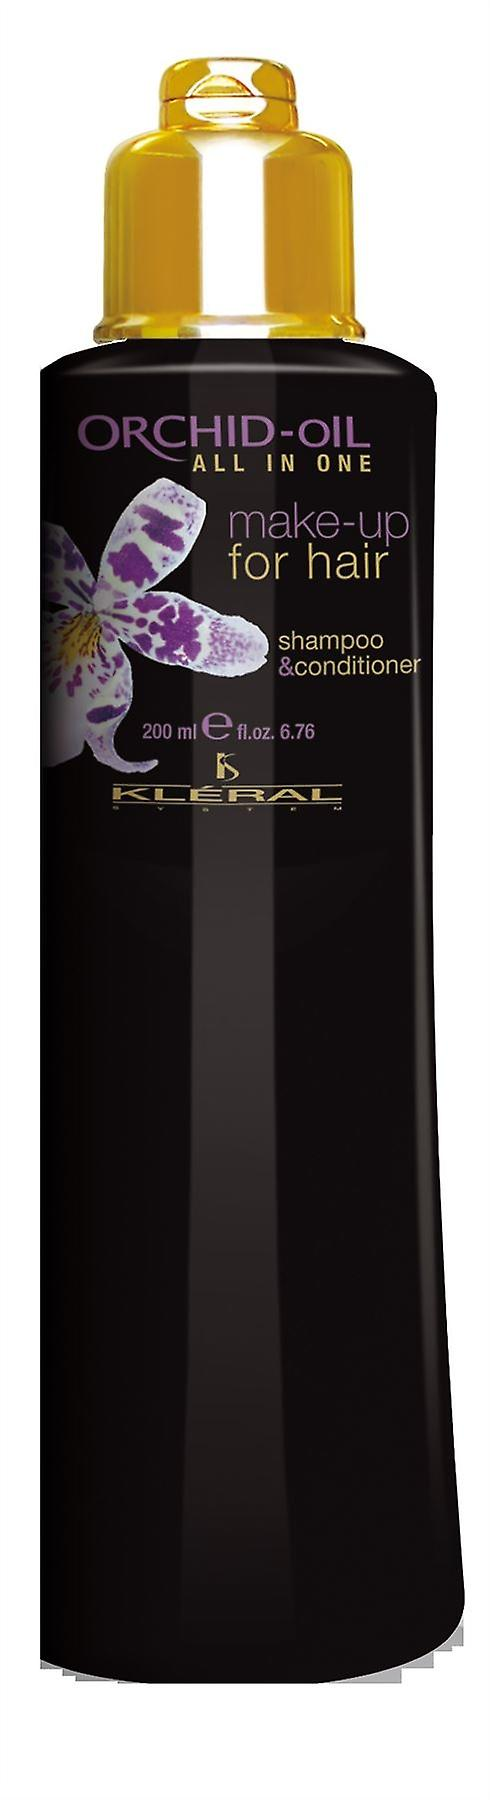 Kleral Orchid Oil 2  in 1 Shampoo & Conditioner 200ml